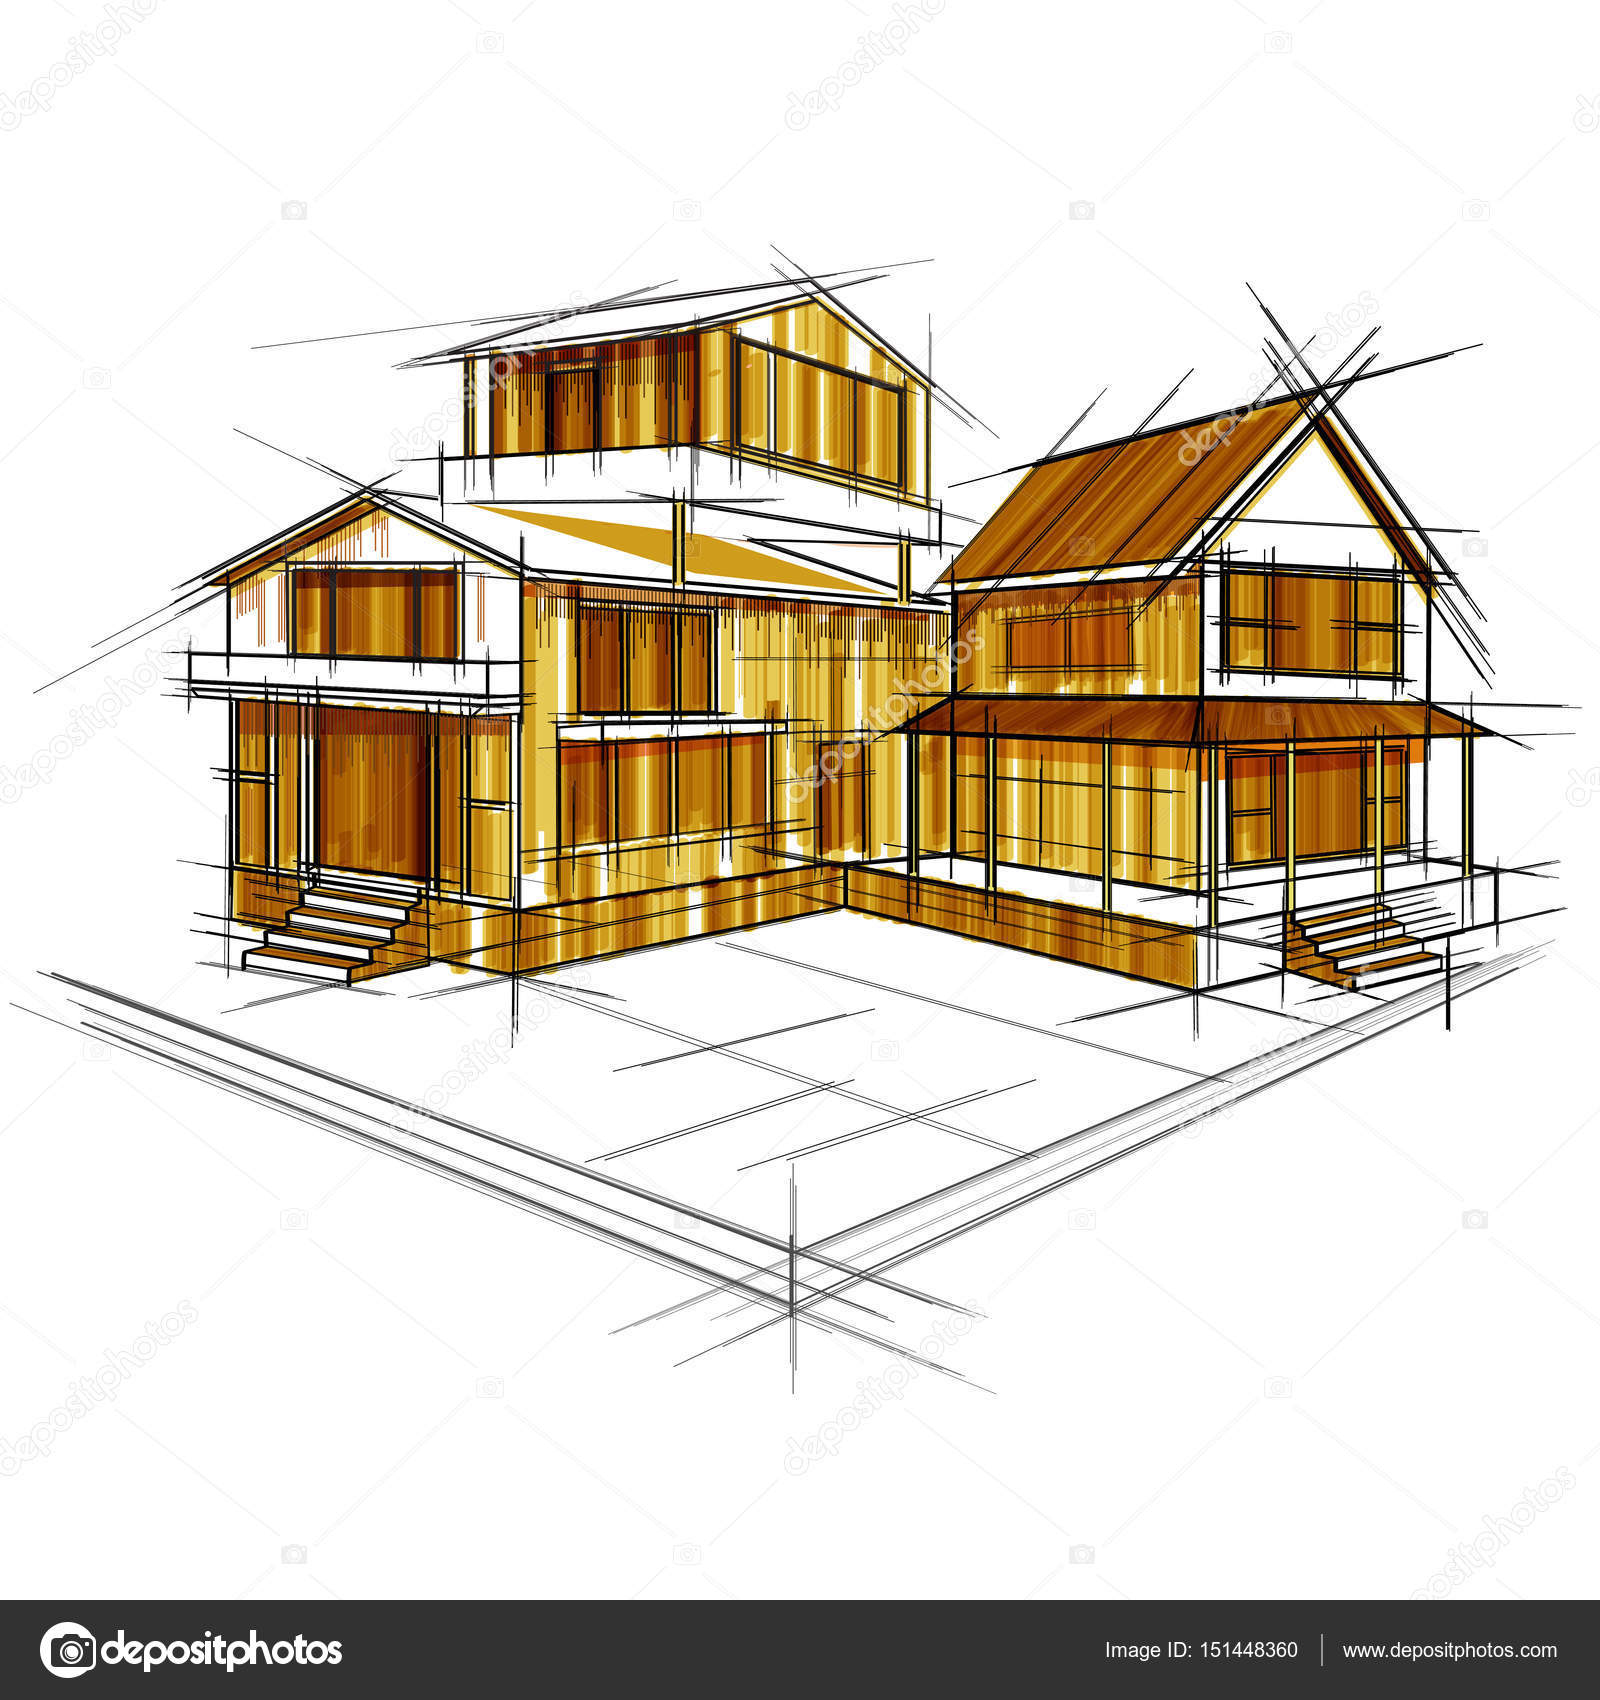 Sketch of exterior building draft blueprint design stock vector sketch of exterior building draft blueprint design stock vector malvernweather Image collections